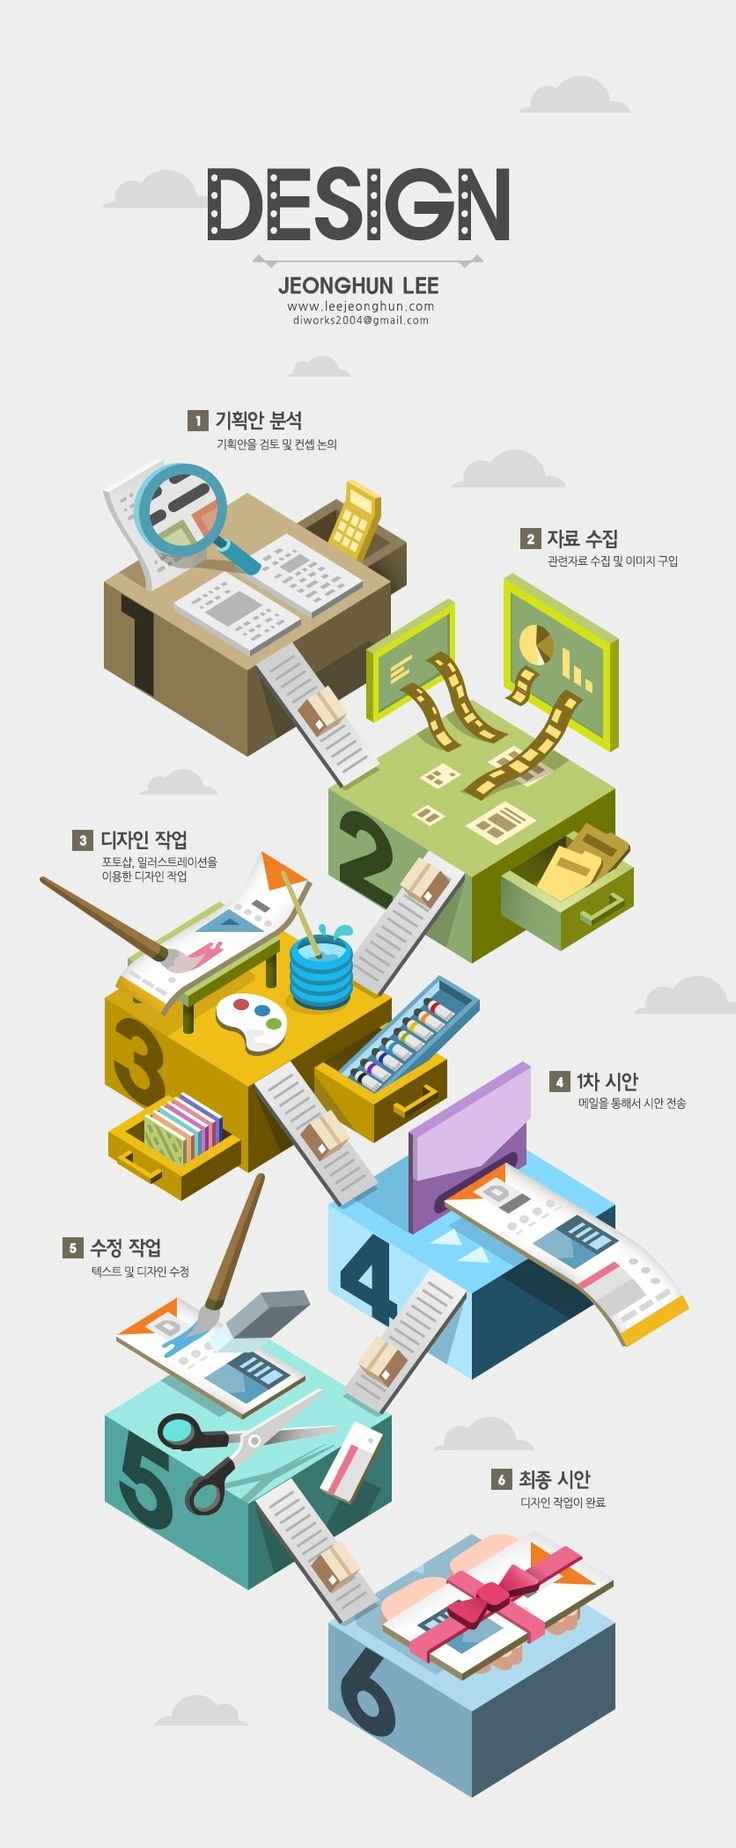 jeonghun lee - infographic design